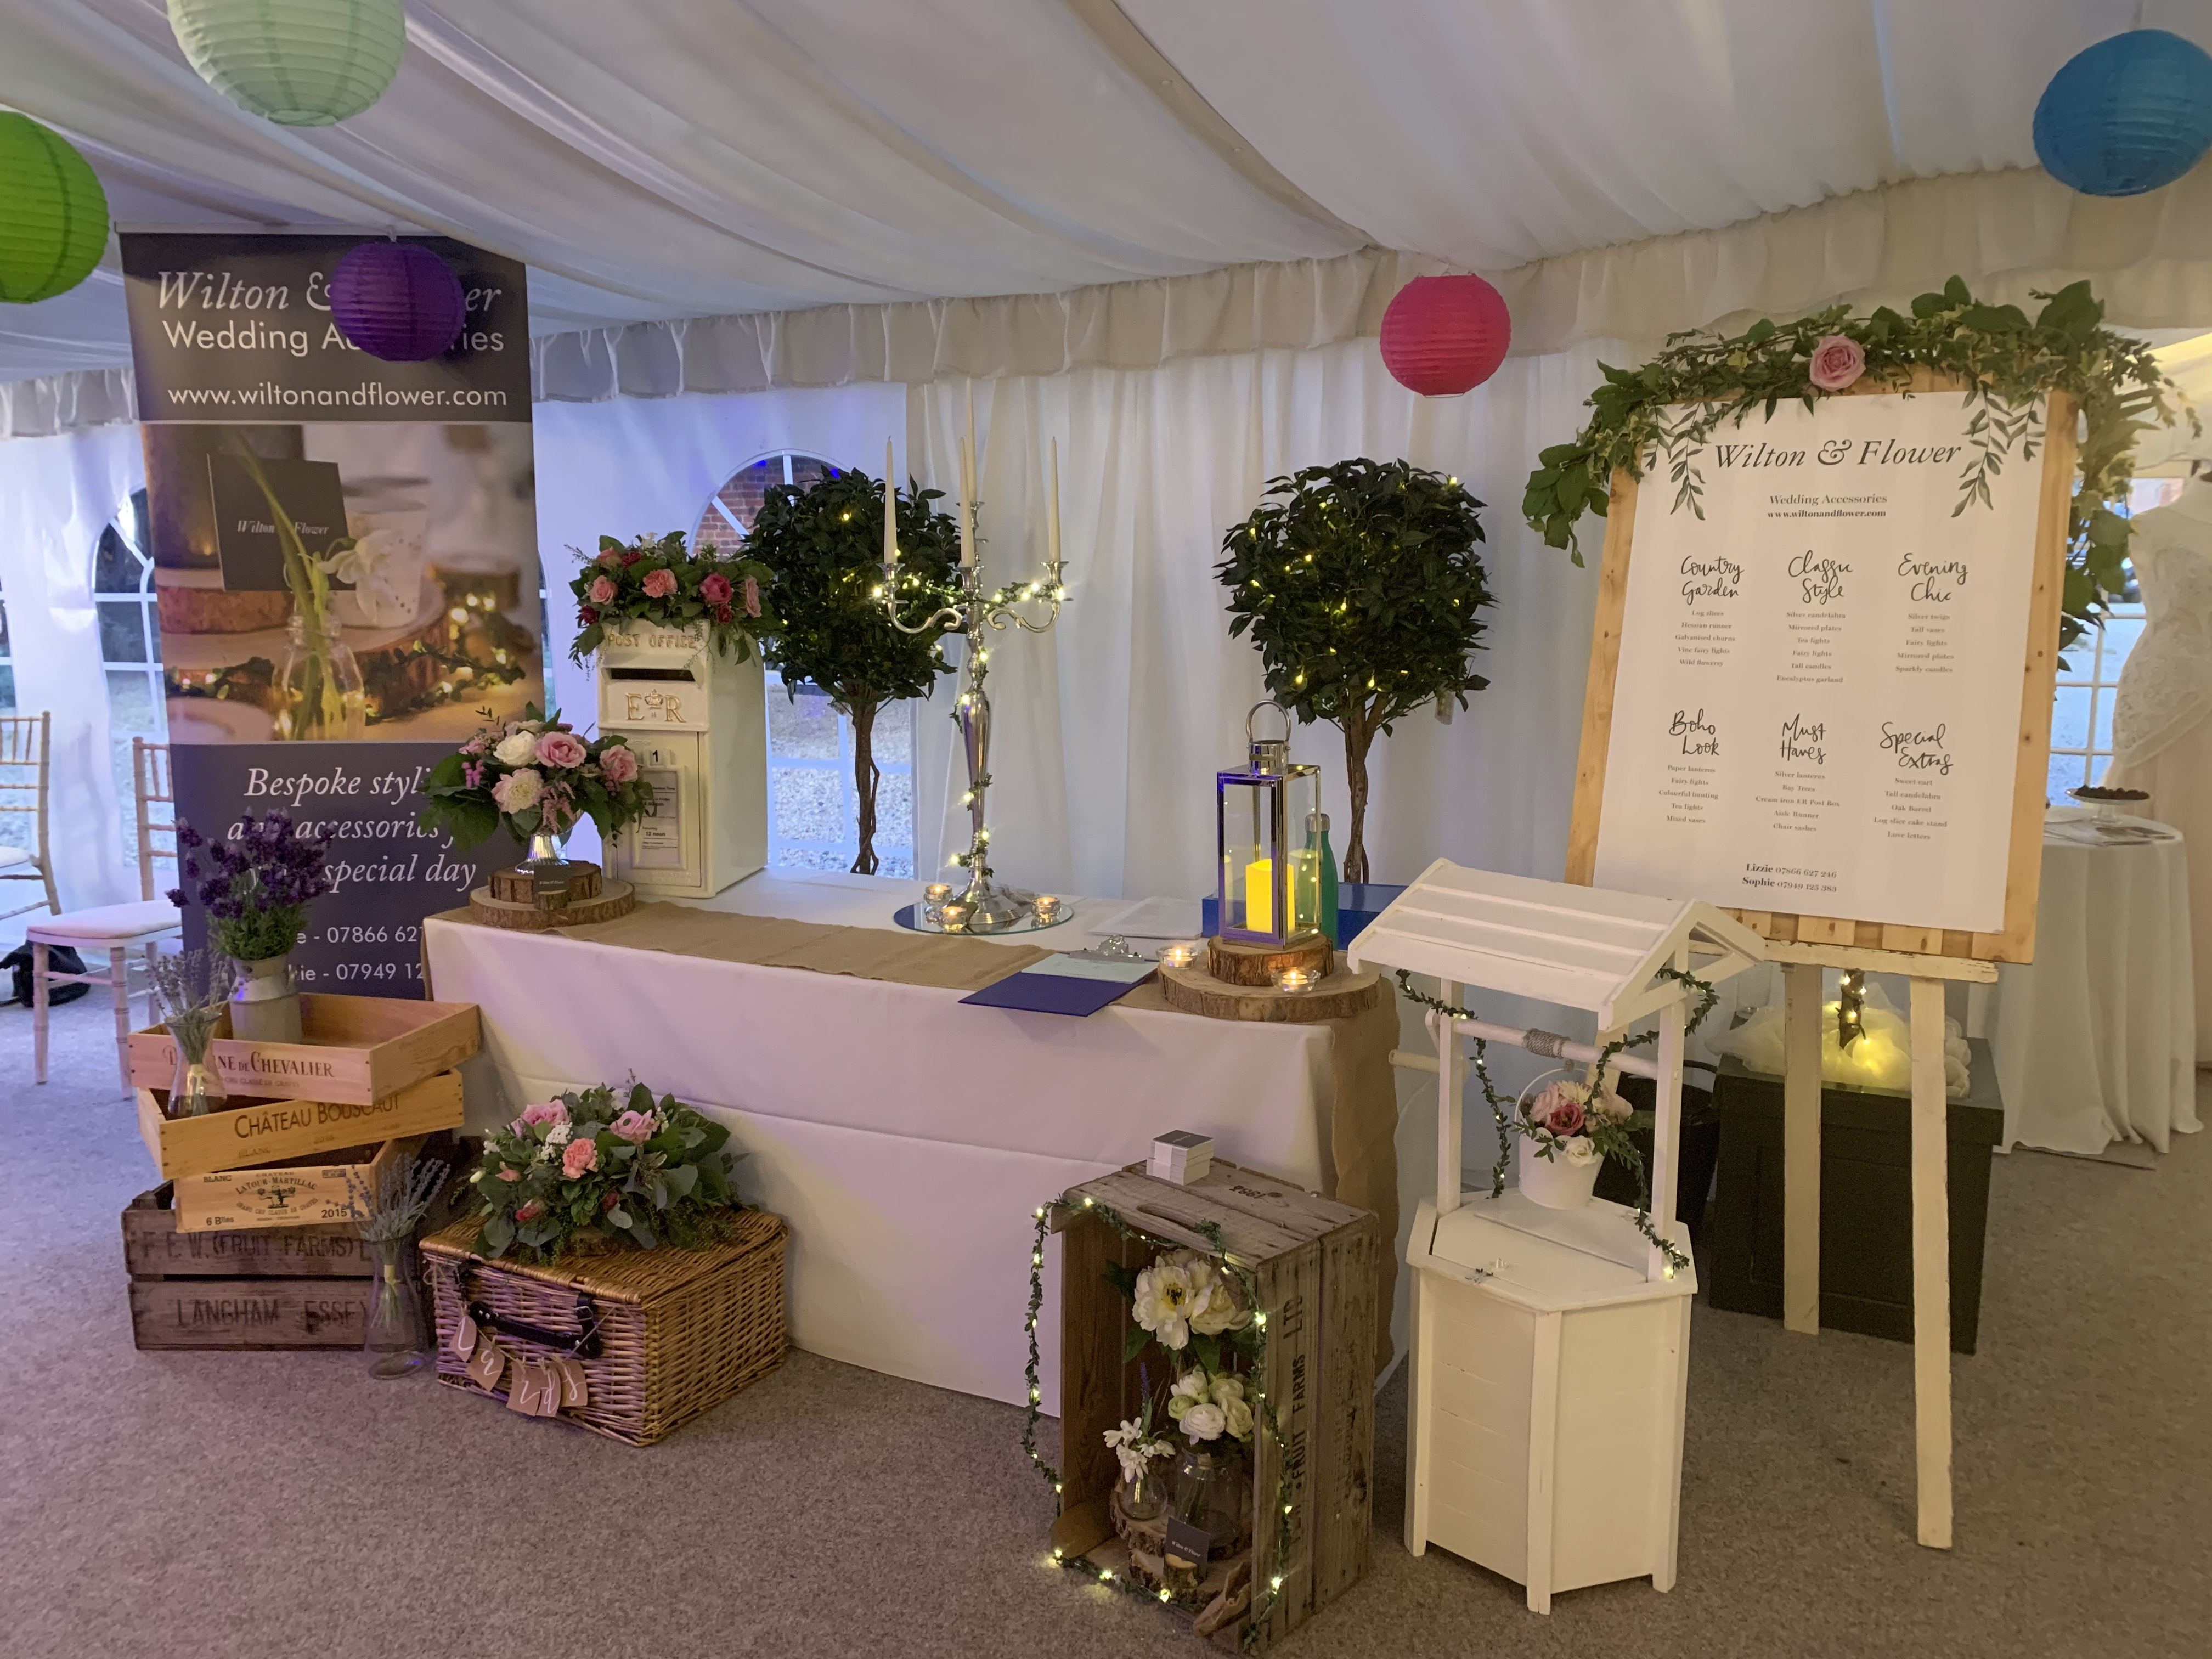 Smeetham Hall Barn Open Evening – 16th October 2019 6-9pm